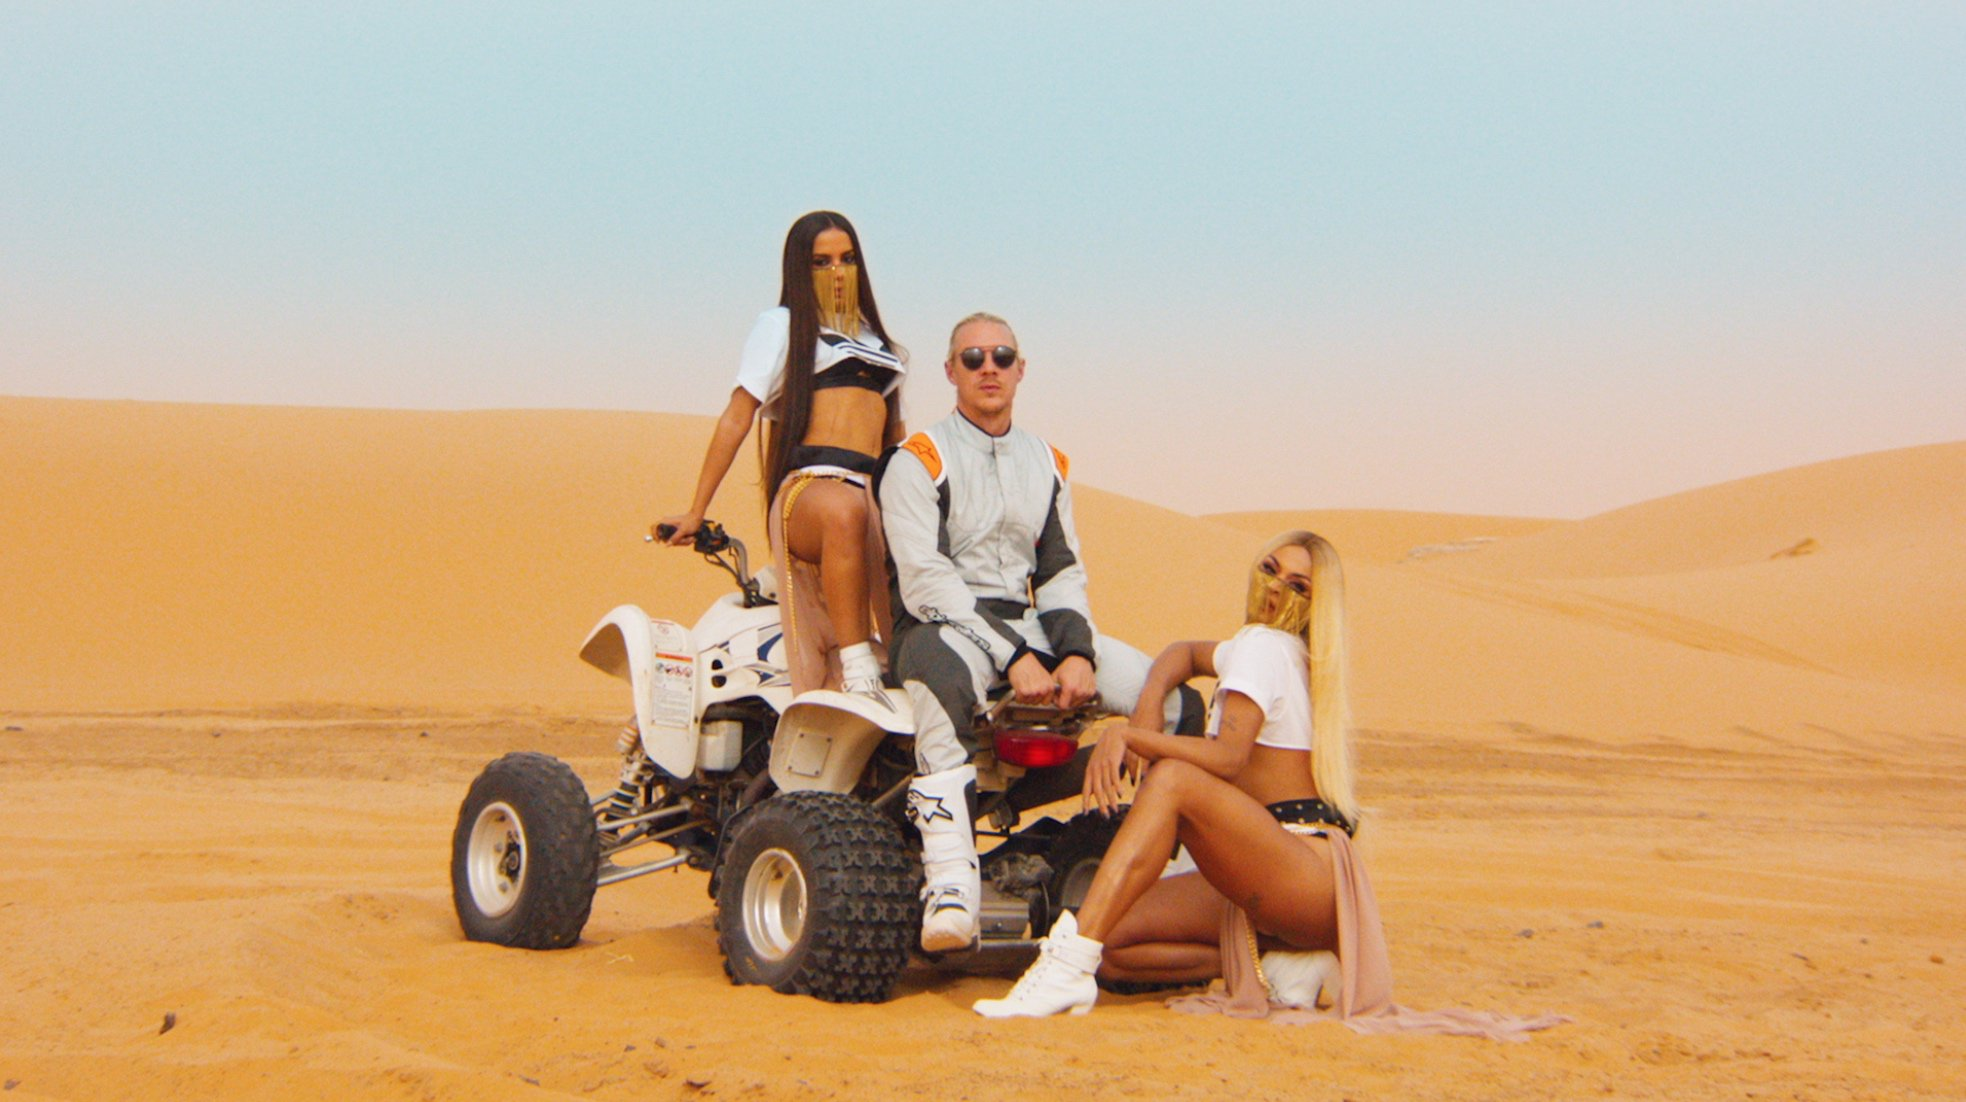 SUA CARA VIDEO OUT NOW @ANITTA @PABLLOVITTAR https://t.co/PrJVvxaRL1 https://t.co/oTSv7mqvHo